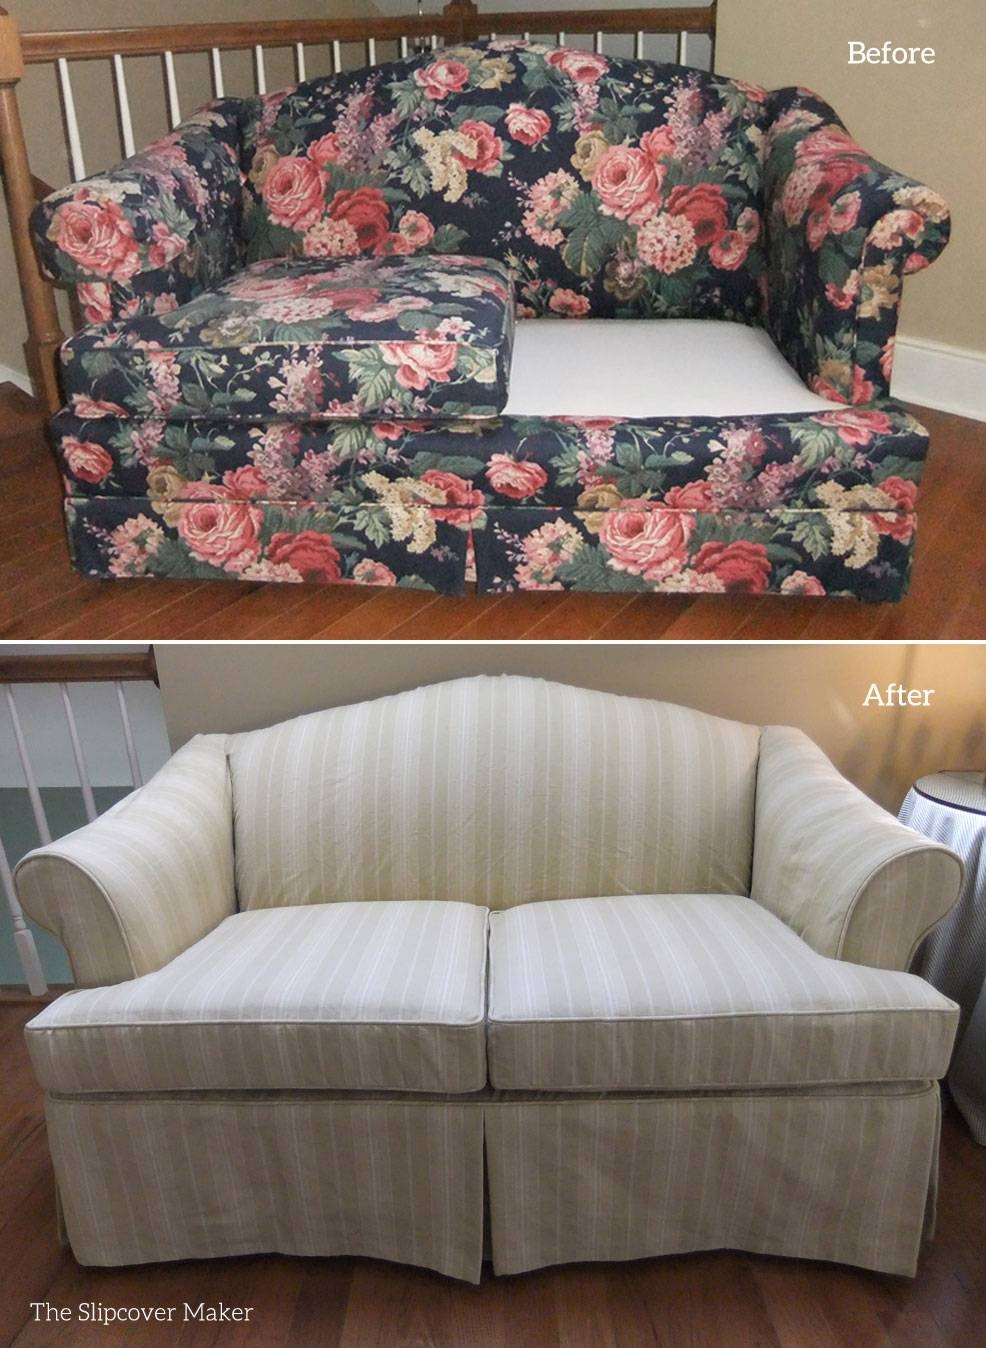 Slipcover Maker In Kalamazoo | The Slipcover Maker regarding Striped Sofa Slipcovers (Image 8 of 15)